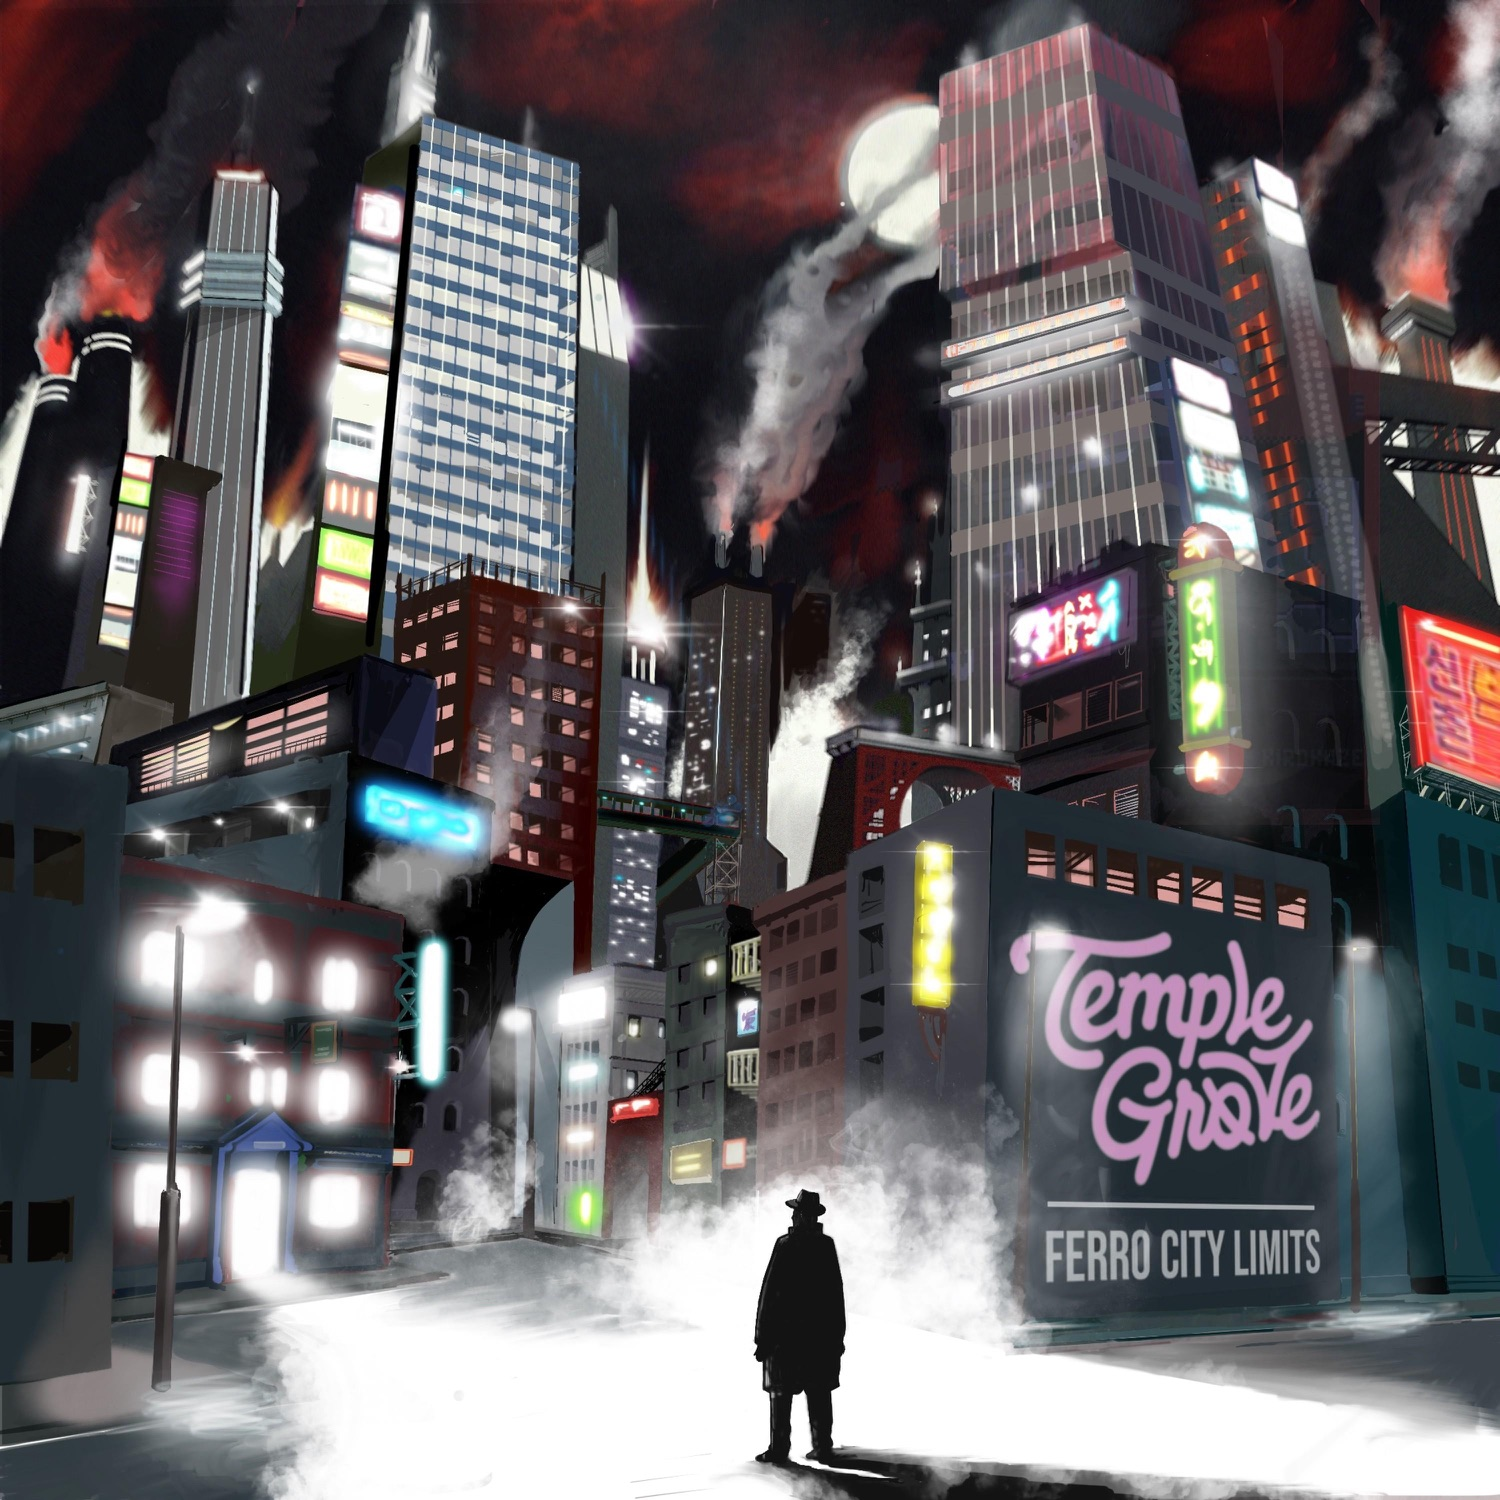 Temple Grove - Ferro City Limits [EP] (2018)